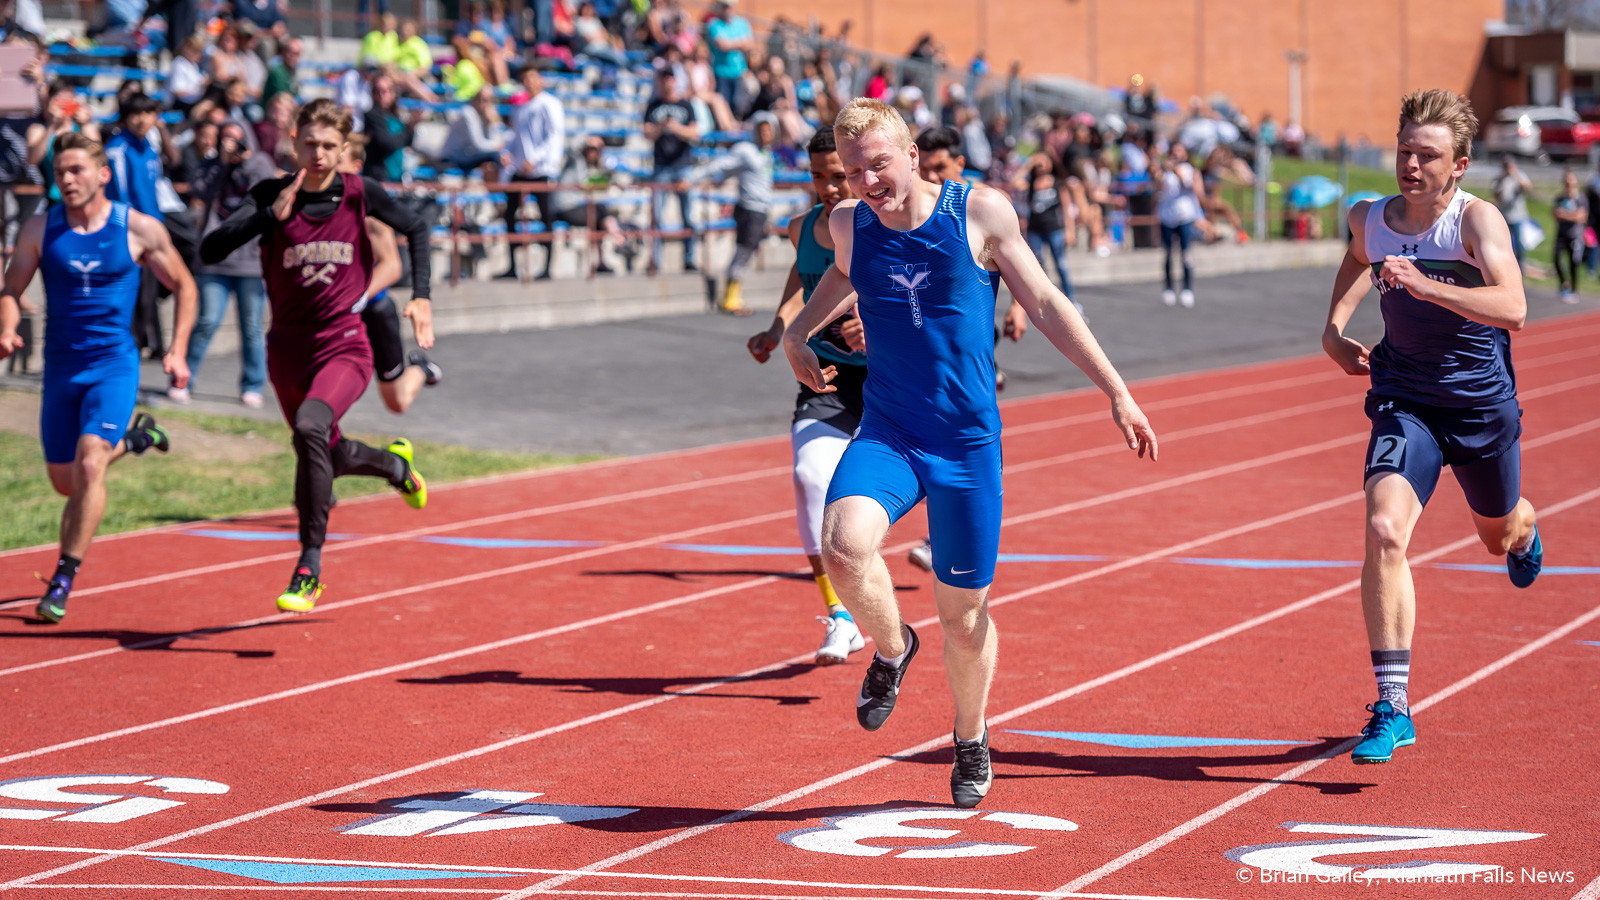 Mazama's Ben Carringer steps across the finish line at 23.49 and into first place in the boys 200 meters during the 27th Annual Lithia Track and Field Invitational. April 27, 2019 (Image, Brian Gailey / Klamath Falls News)